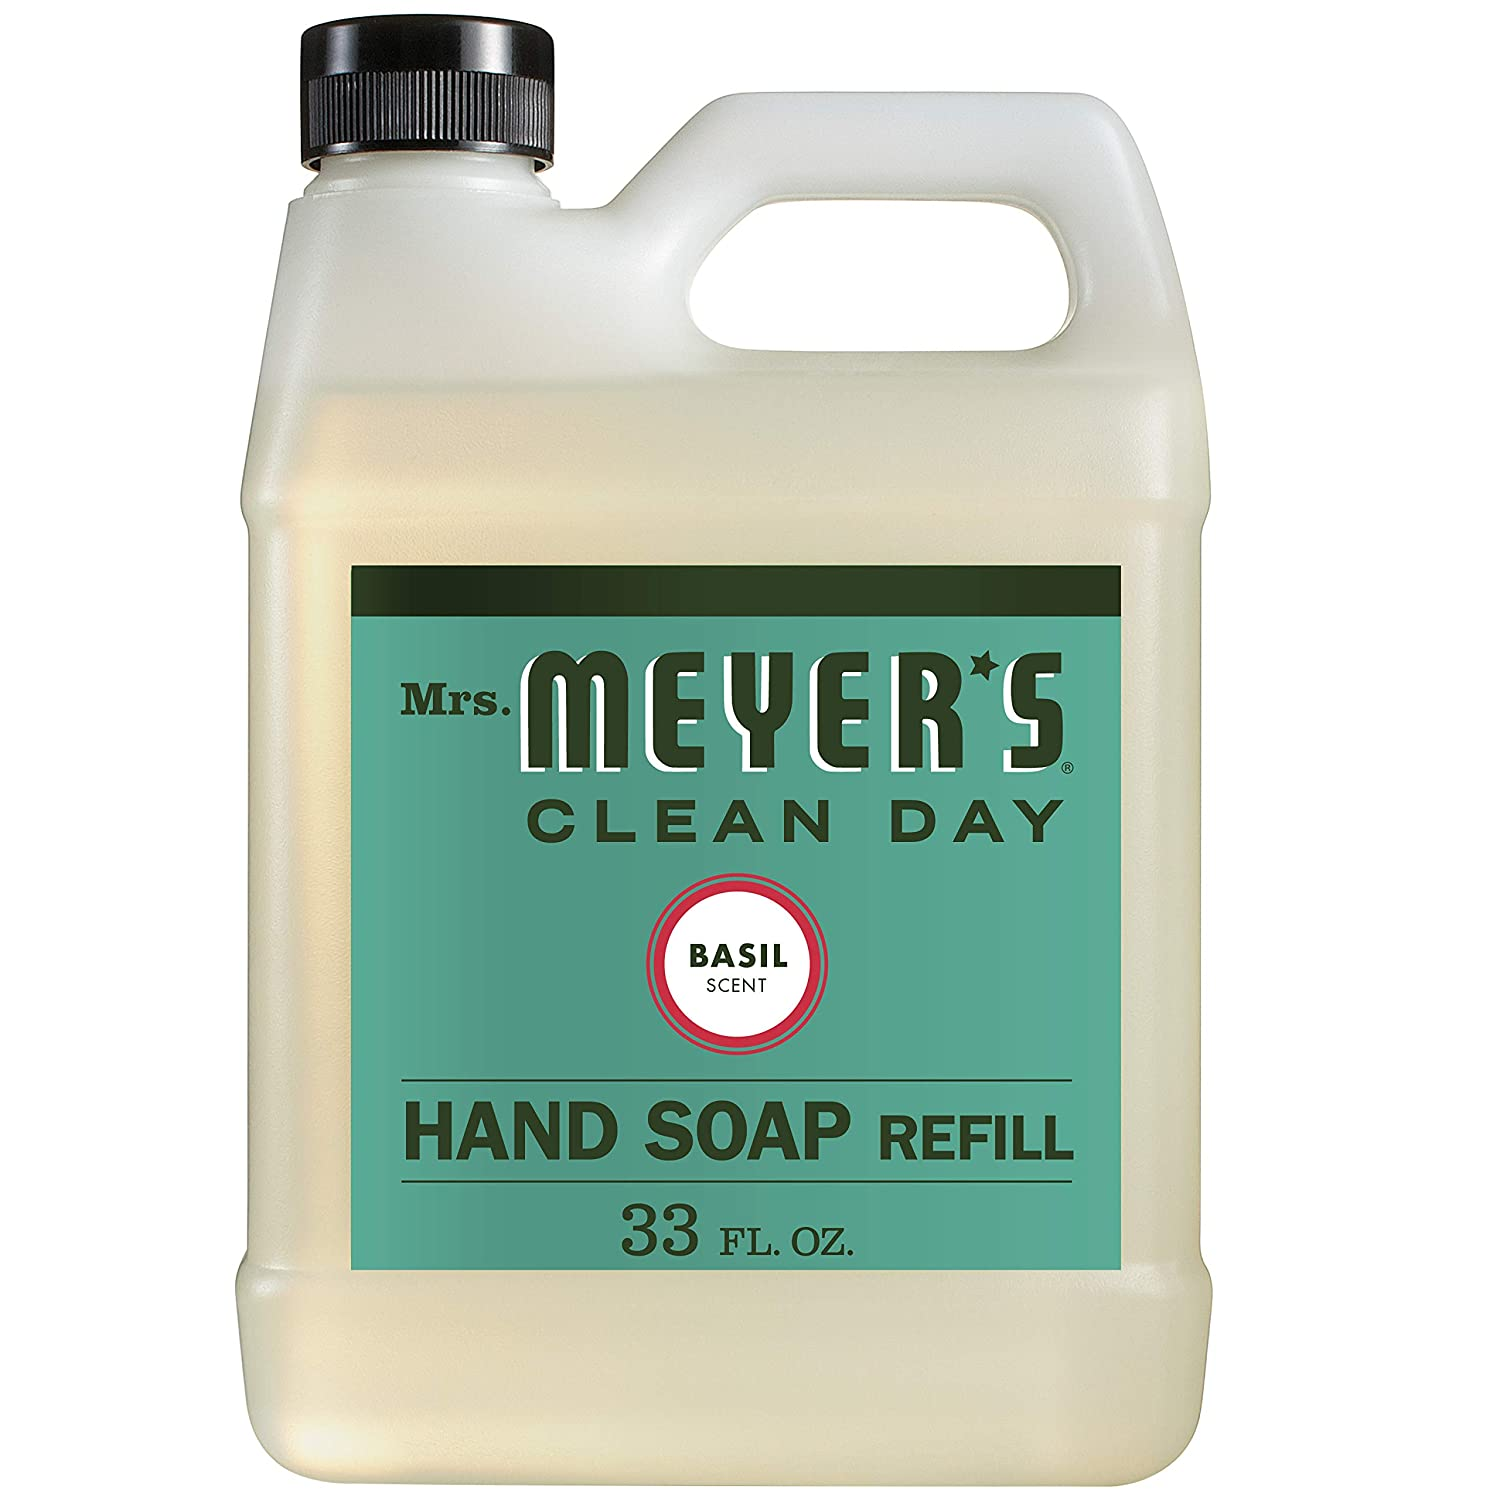 Mrs. Meyer's Hand Soap Refill.